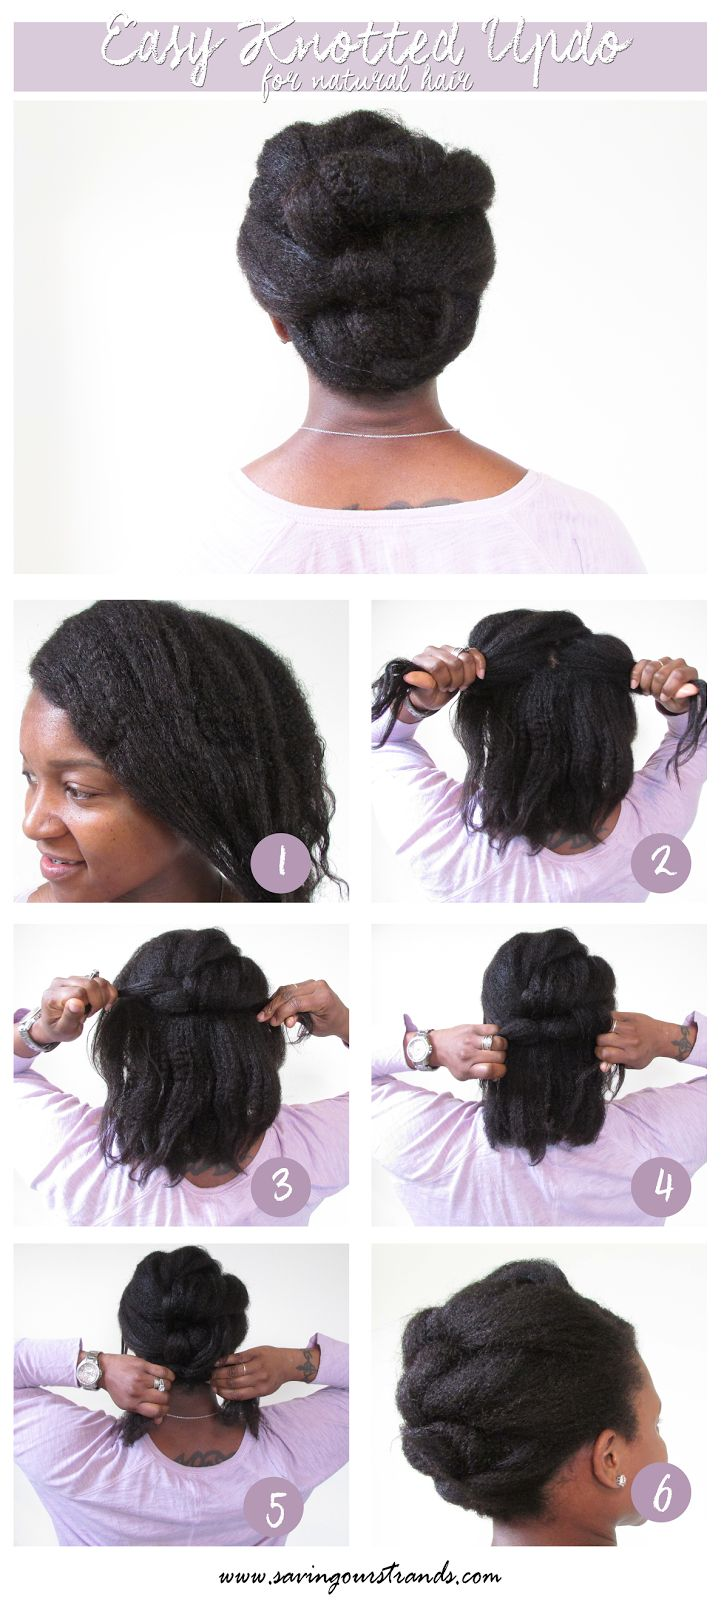 SavingOurStrands | Celebrating Our Natural Kinks Curls & Coils: Tutorial: Easy Knotted Updo for Natural Hair